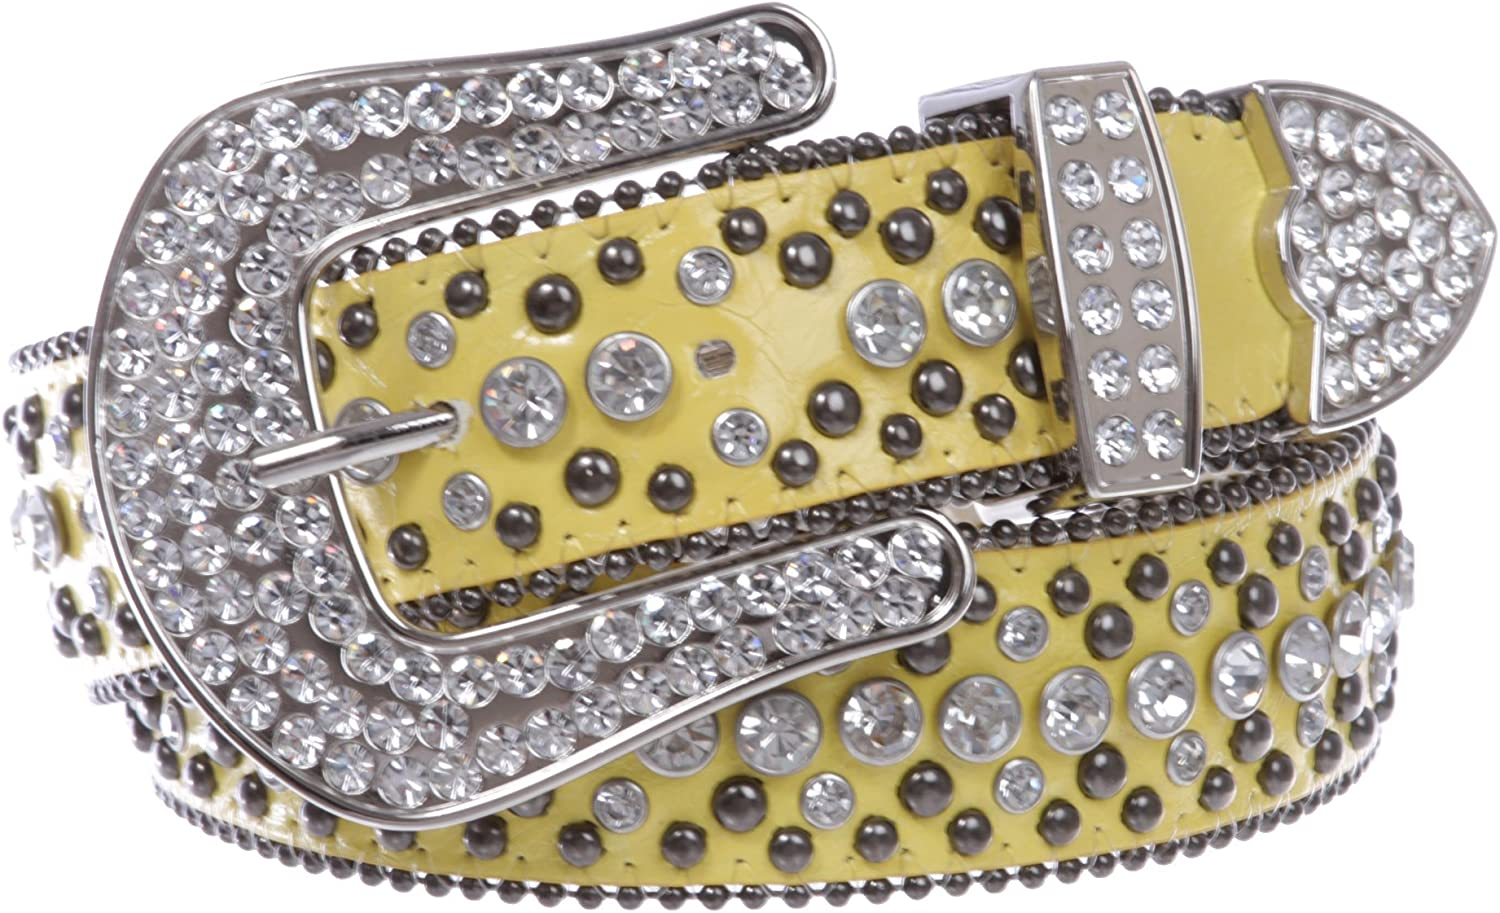 1 1 2  Women's Snap On Rhinestone and Gun Metal color Circle Studded Leather Belt, Yellow   M L  35